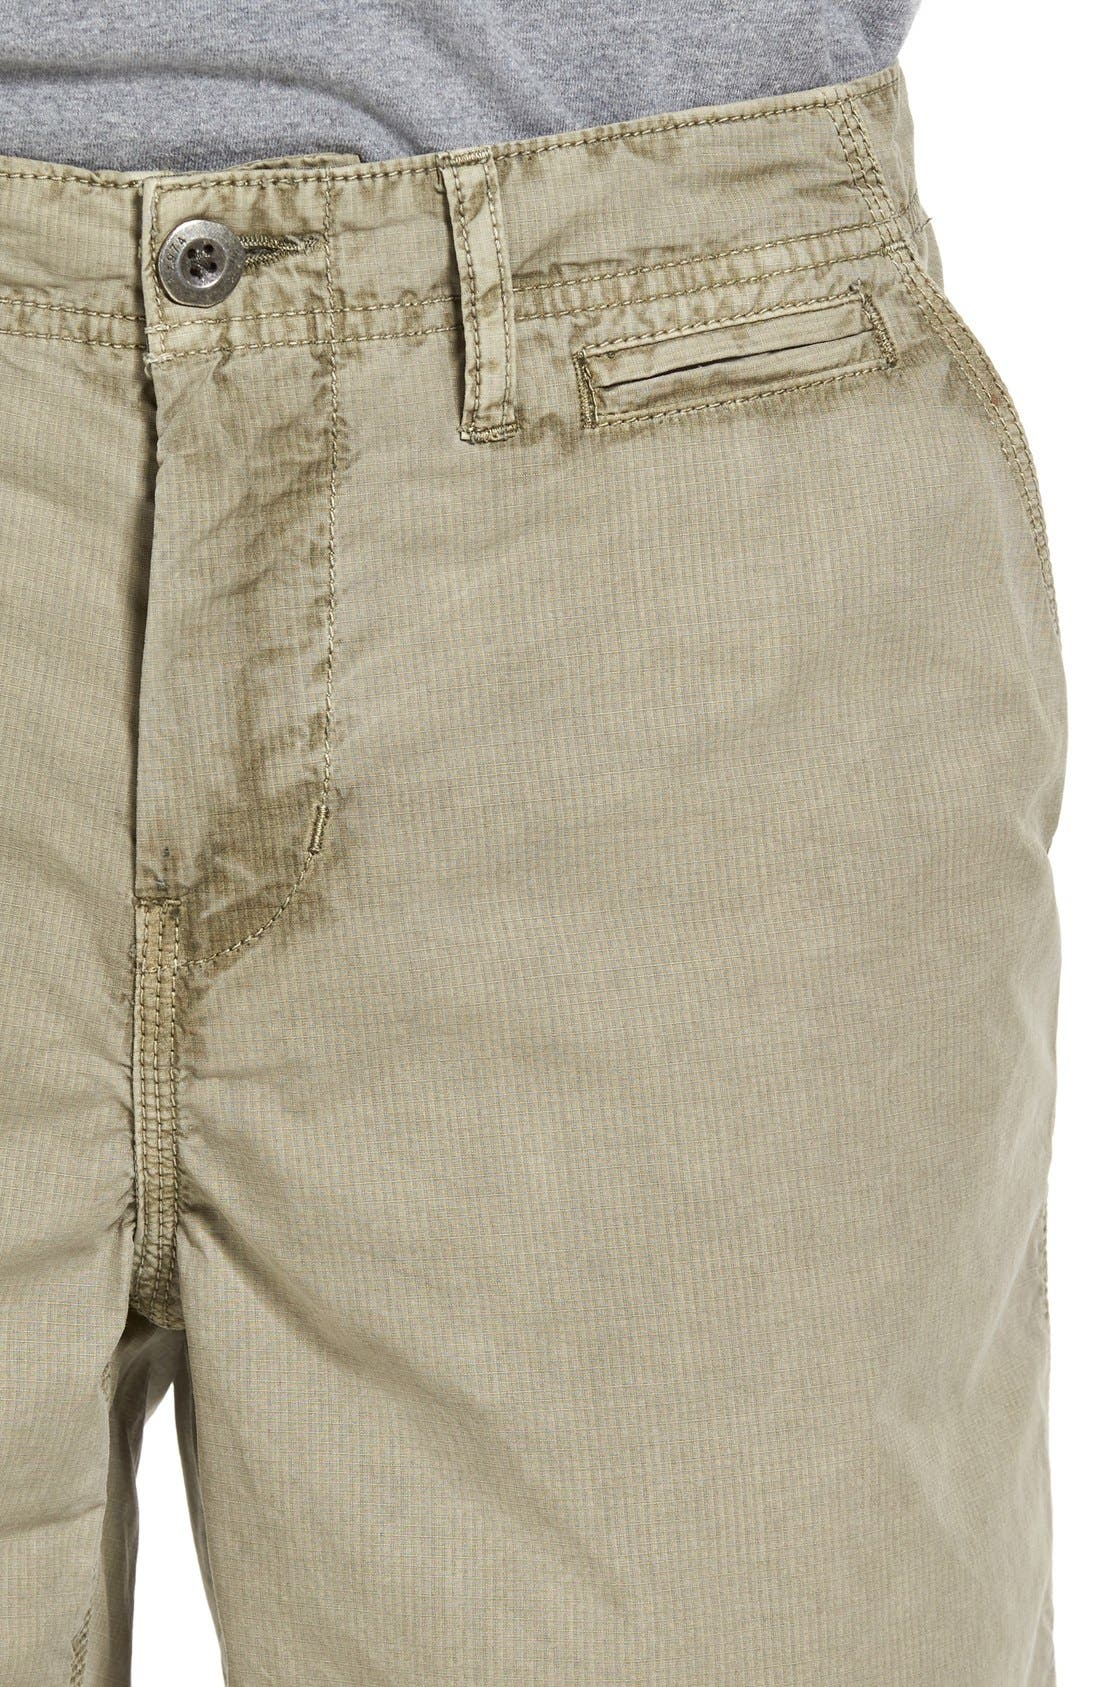 Palm Springs Shorts,                             Alternate thumbnail 4, color,                             Olive